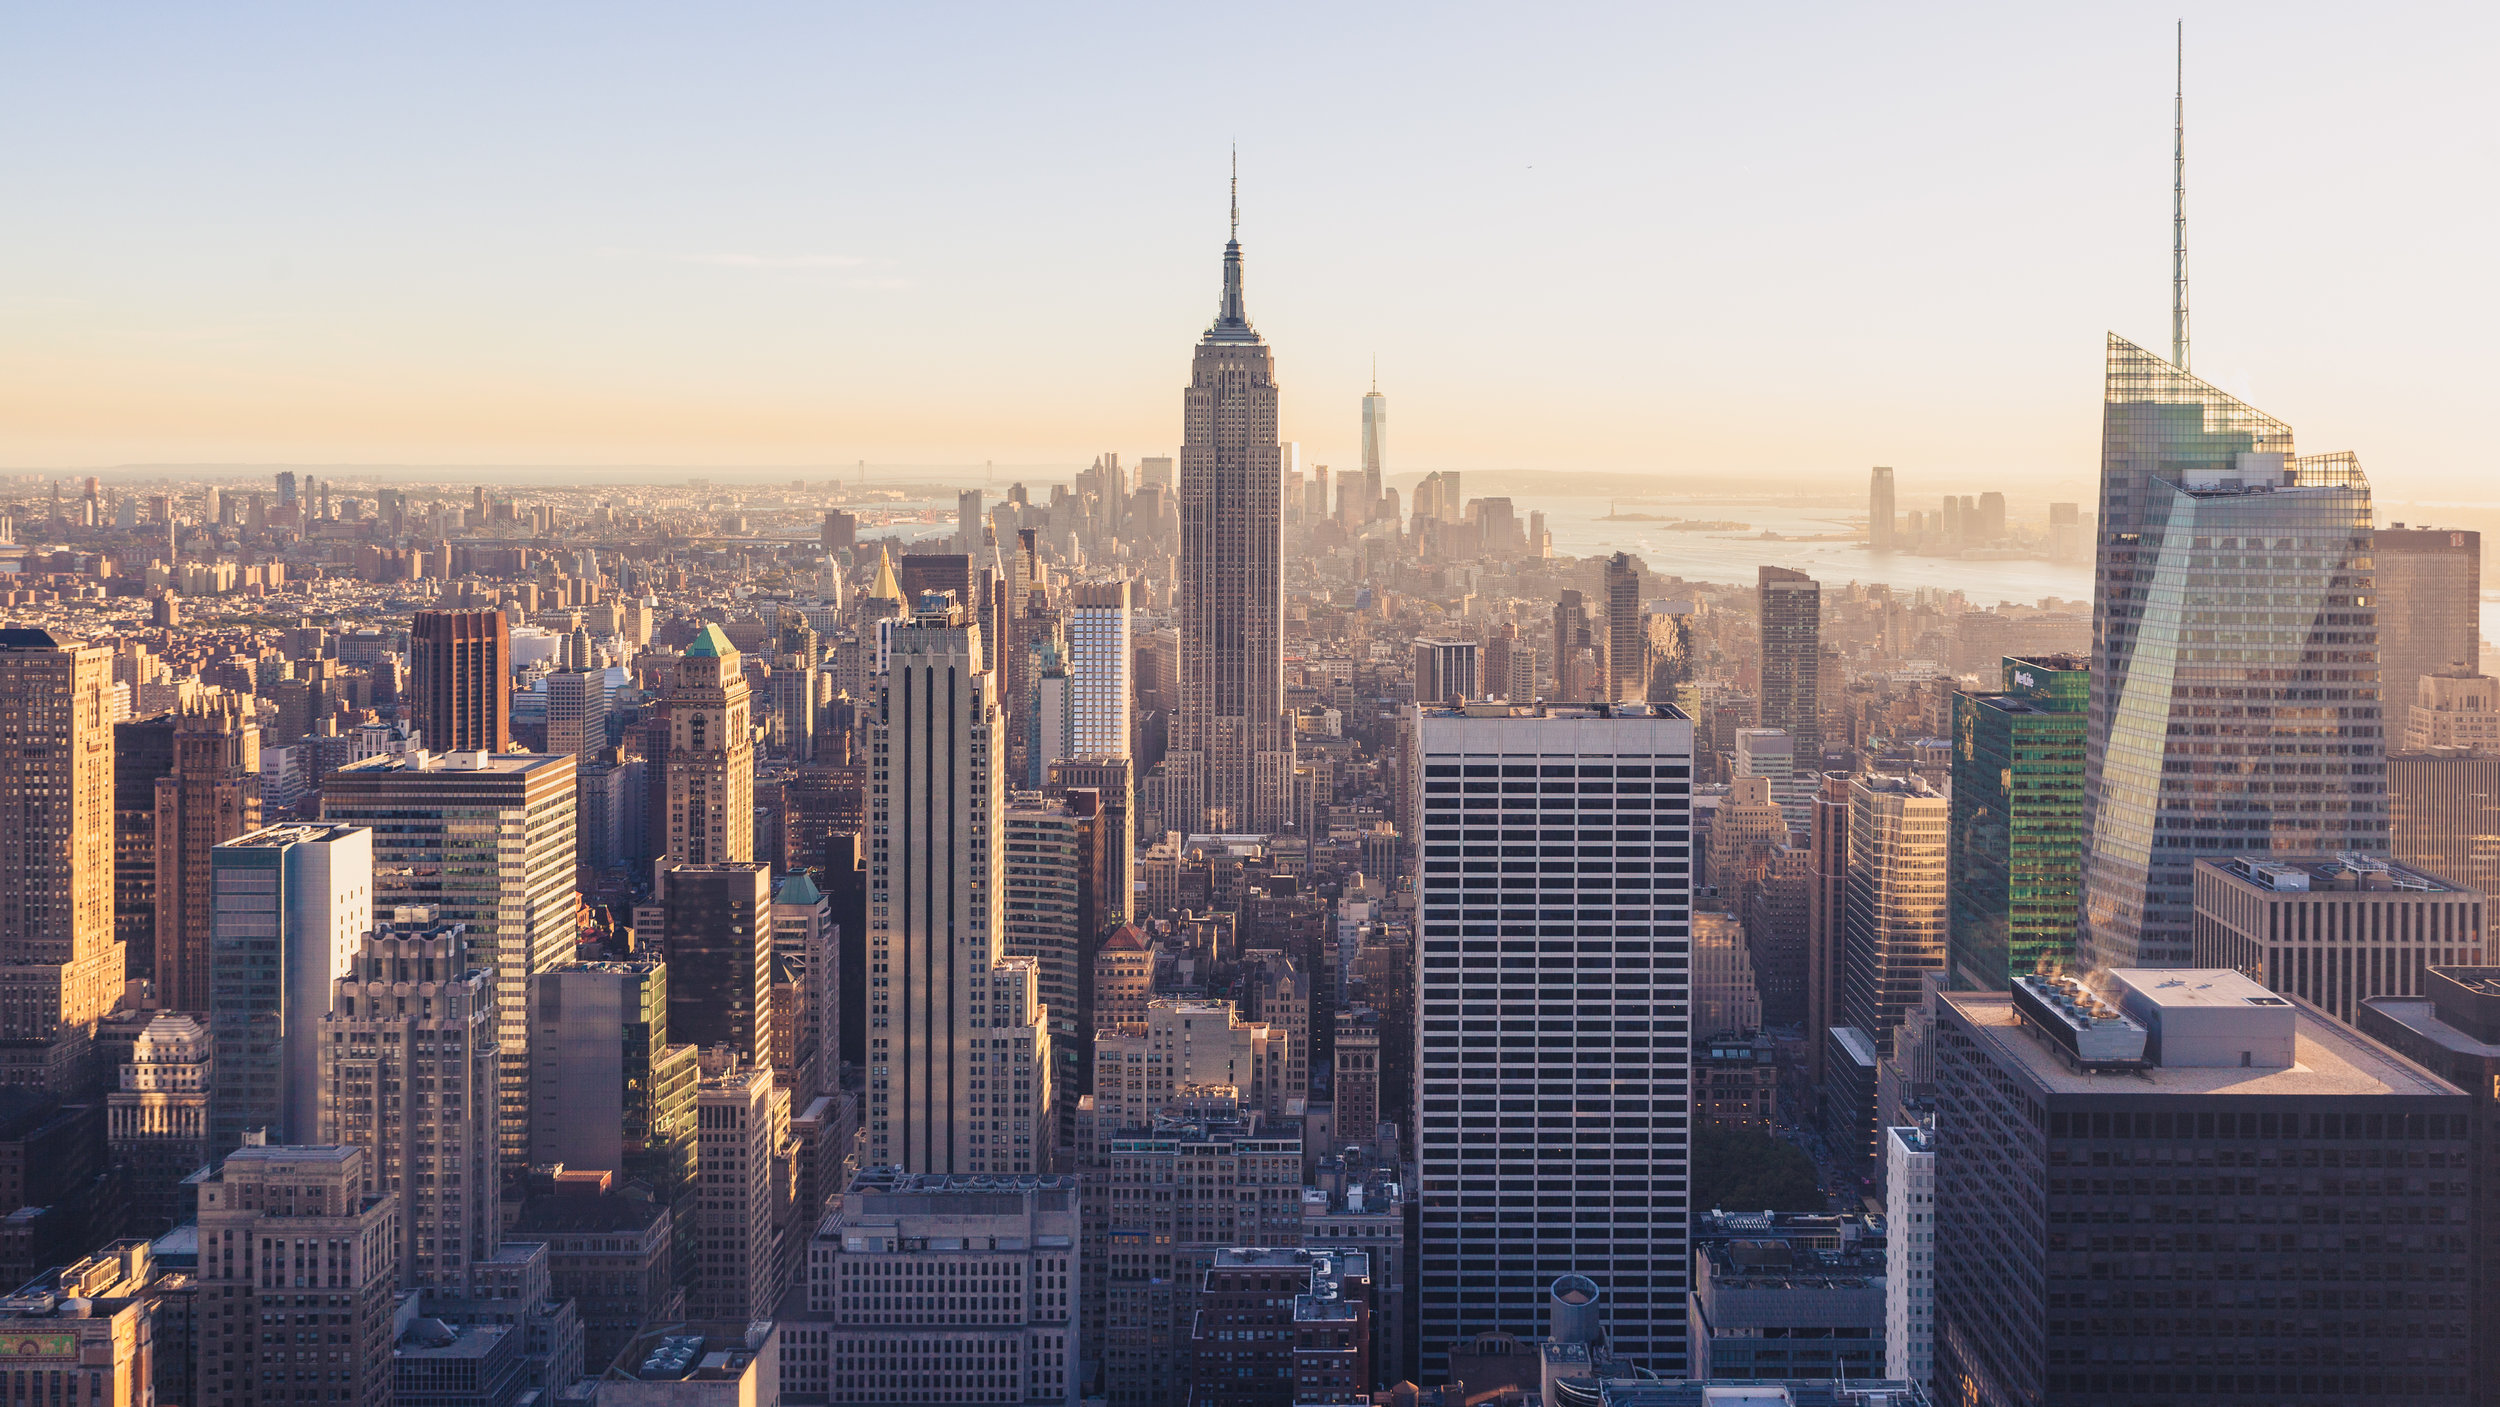 NeW YORK CITY - Welcome to the Big Apple! NYC! There's always something happening or going on. Endless shopping, tons of pop ups, events and art galore.Jersey (NJ) is the backyard and The Hamptons is a close vacation getaway.